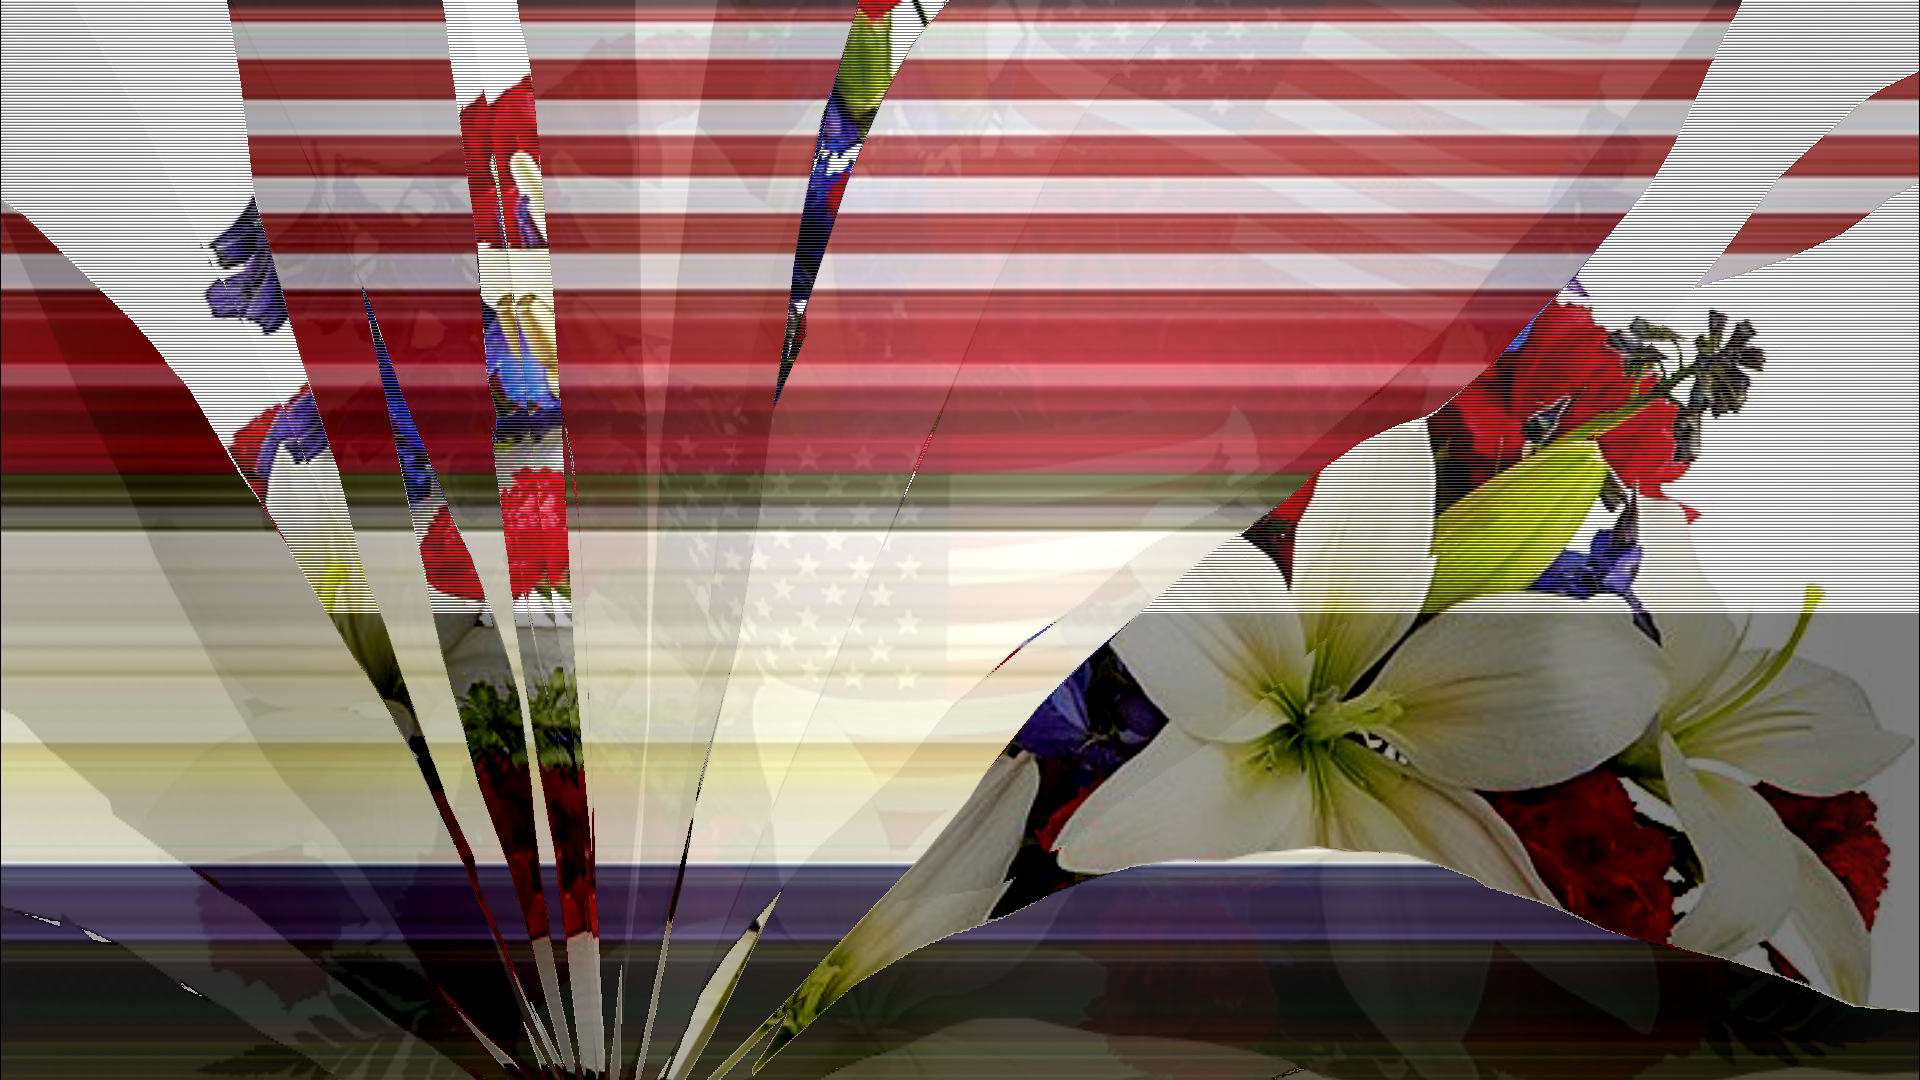 A cracked screen showing a distorted image of the American flag and a floral arrangement.